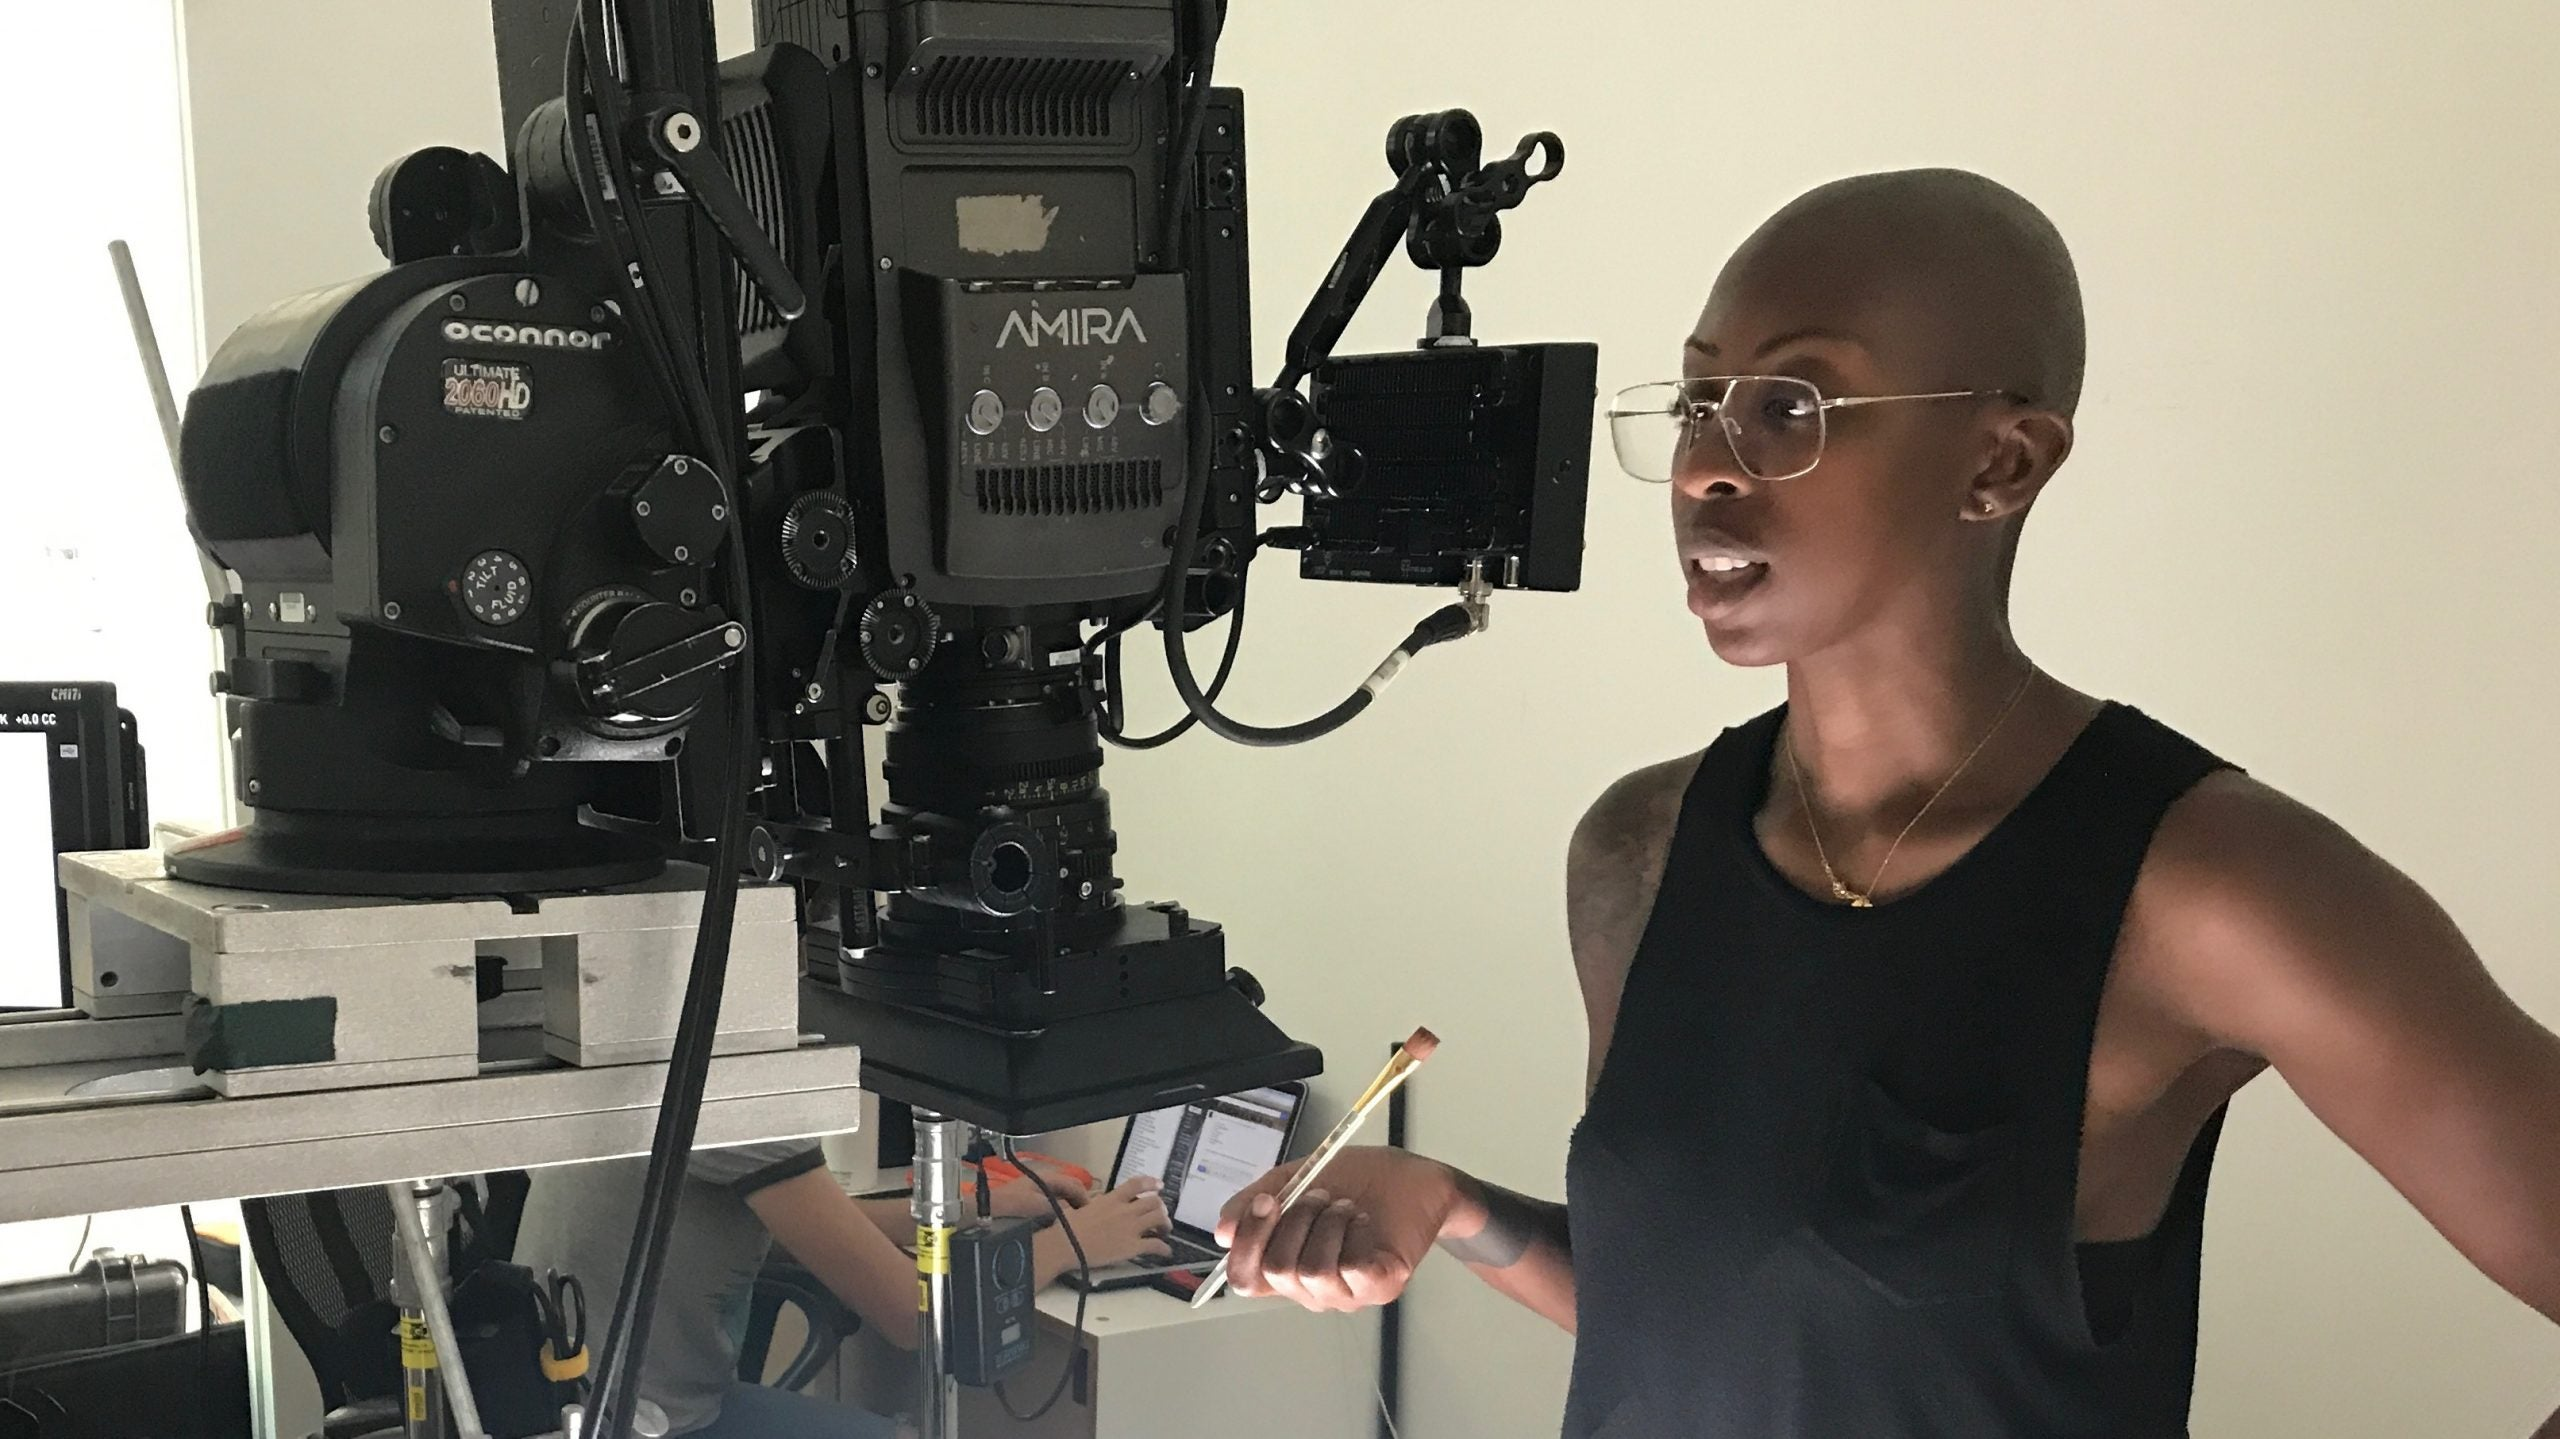 When She Sees Us: Oge Egbuonu's Film Is A Love Letter To Black Women